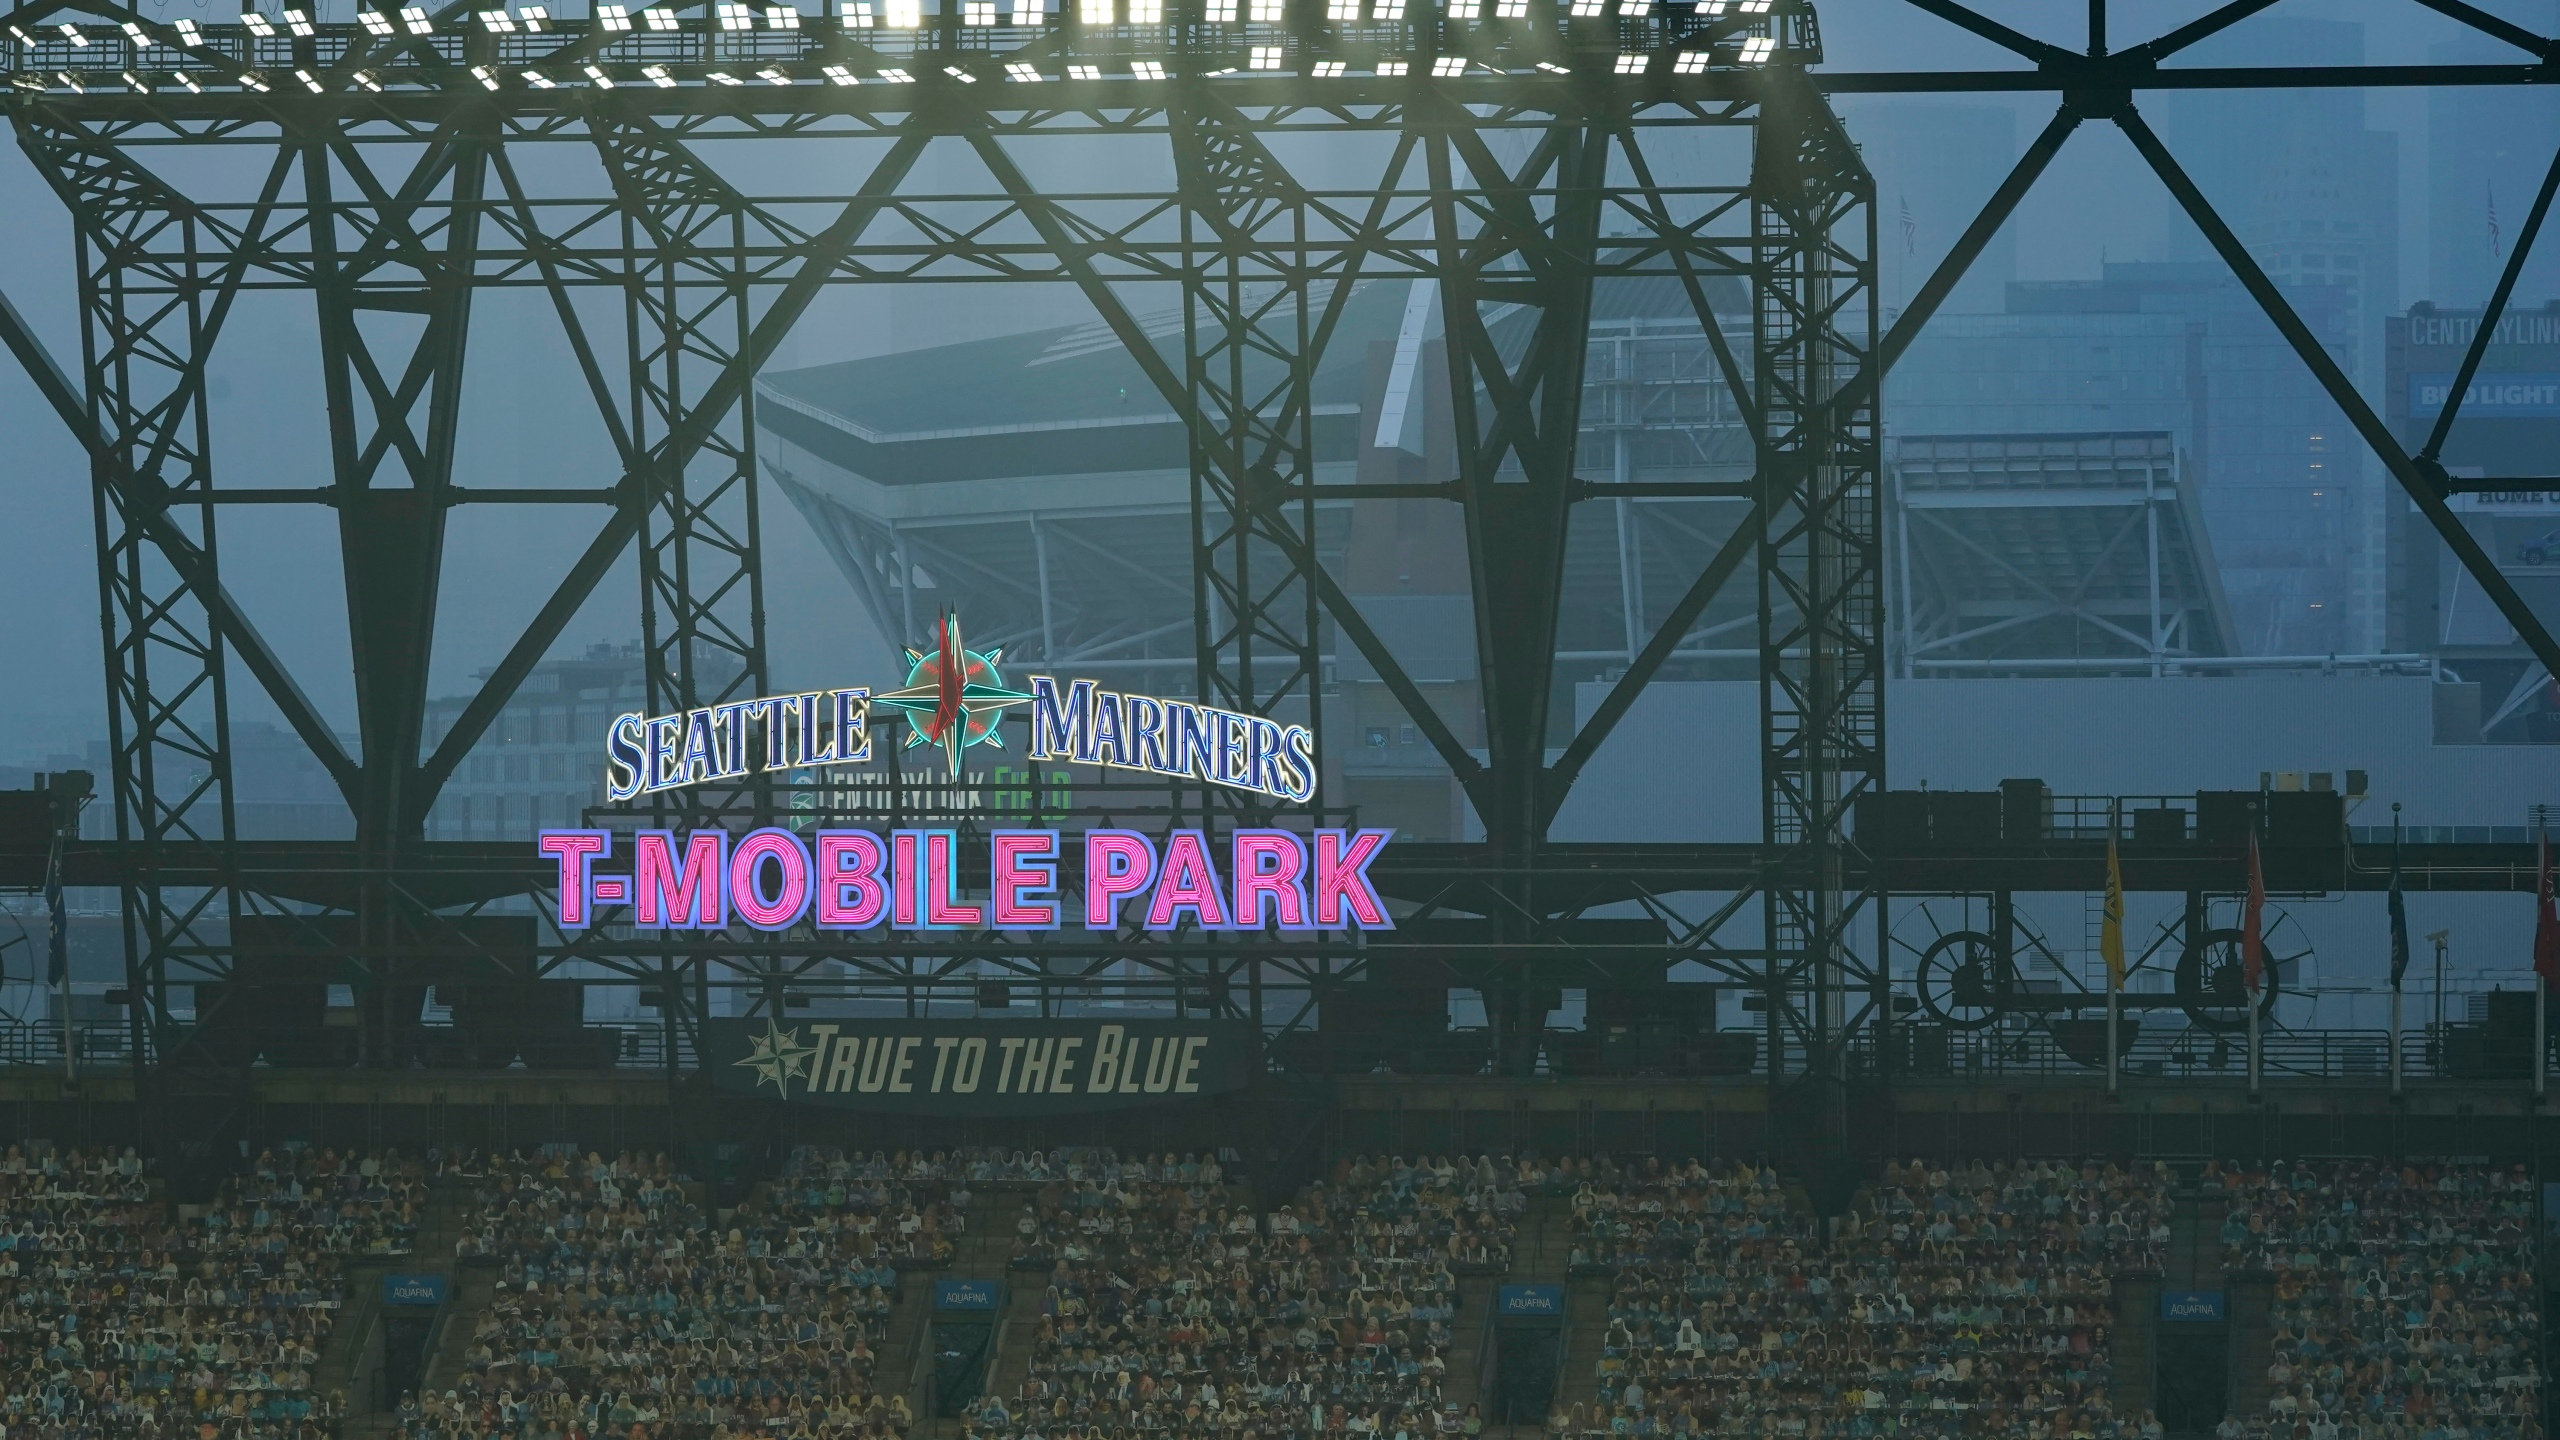 Smoke from wildfires fills the air at T-Mobile Park as photos of fans are displayed in the left field bleachers and CenturyLink Field is visible behind the ballpark sign during the second baseball game of a doubleheader between the Seattle Mariners and the Oakland Athletics, Sept. 14, 2020, in Seattle. (Ted S. Warren / Associated Press)